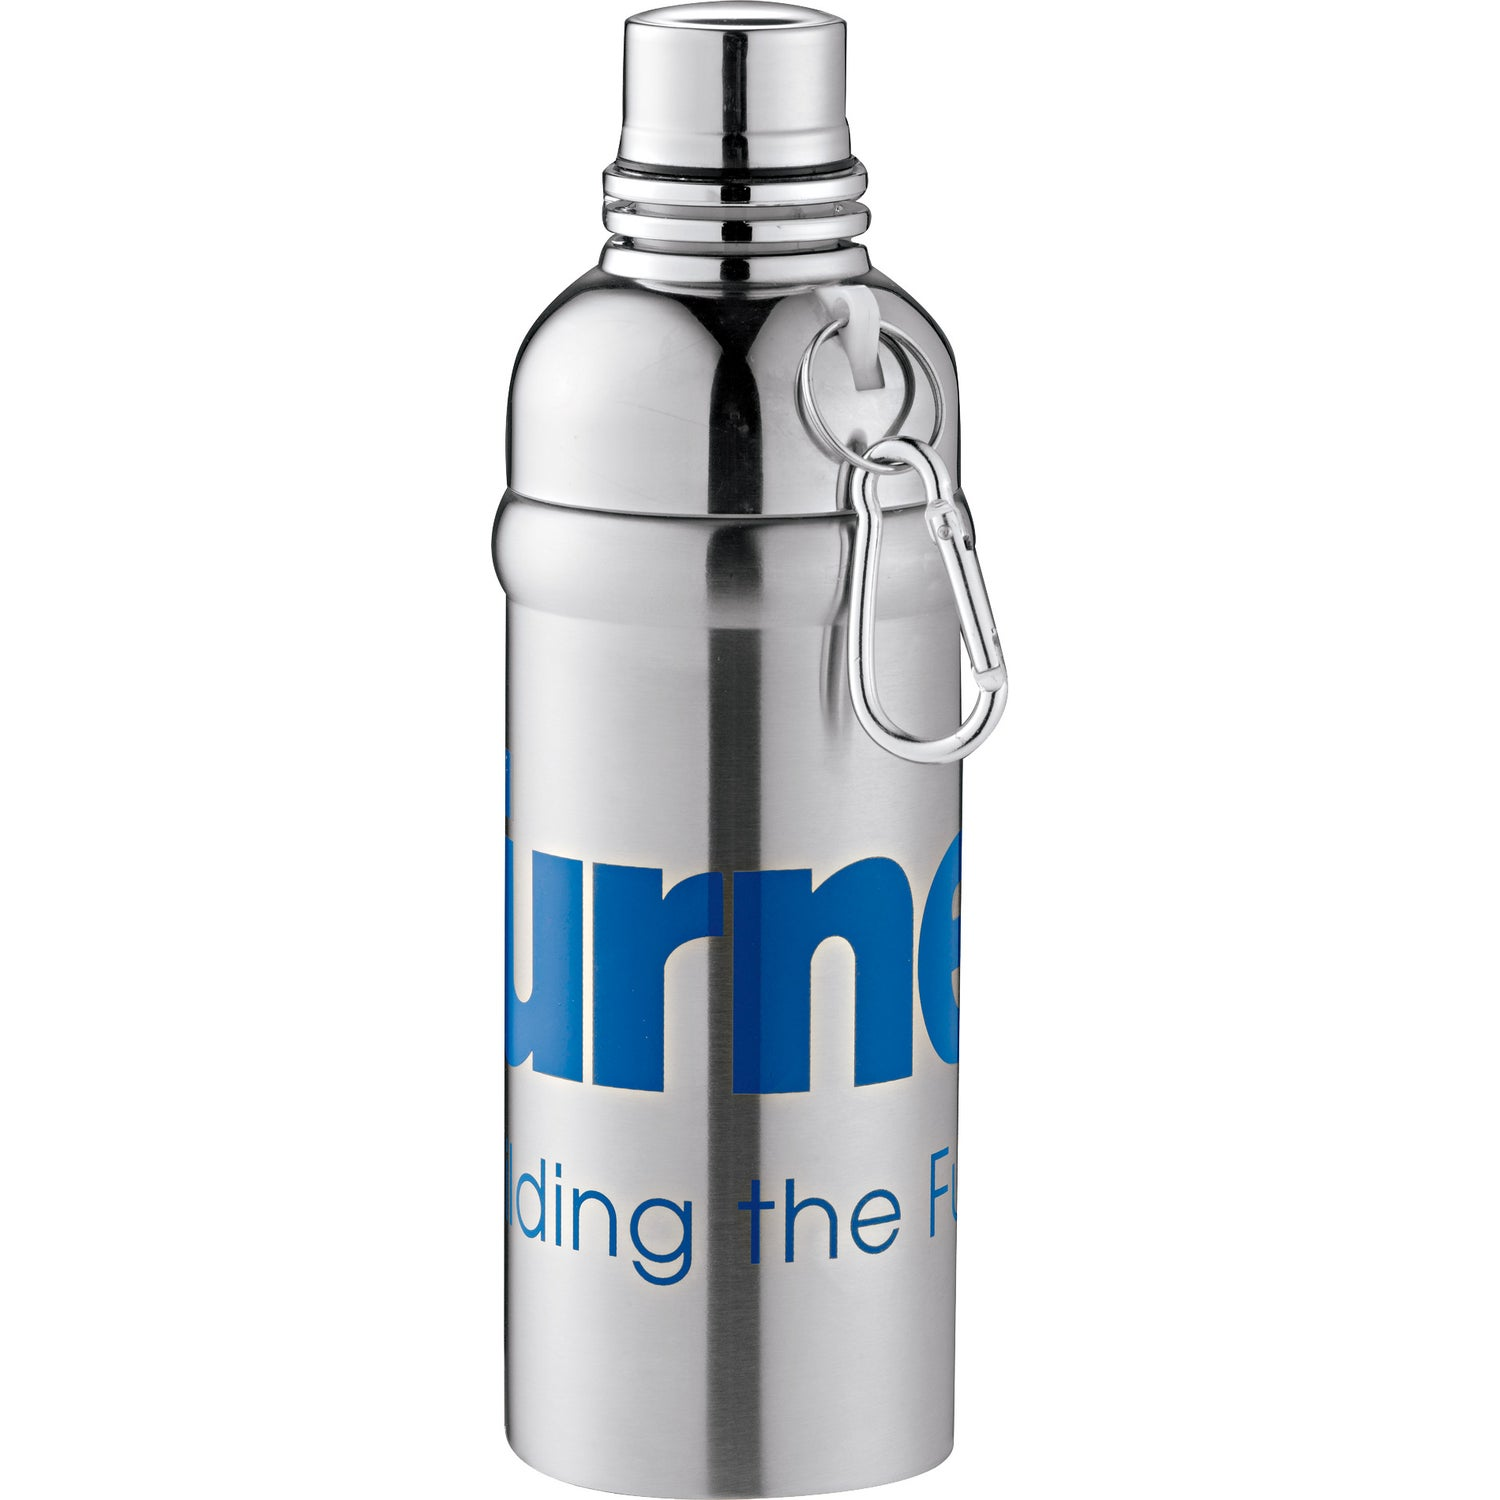 Stainless sports bottle